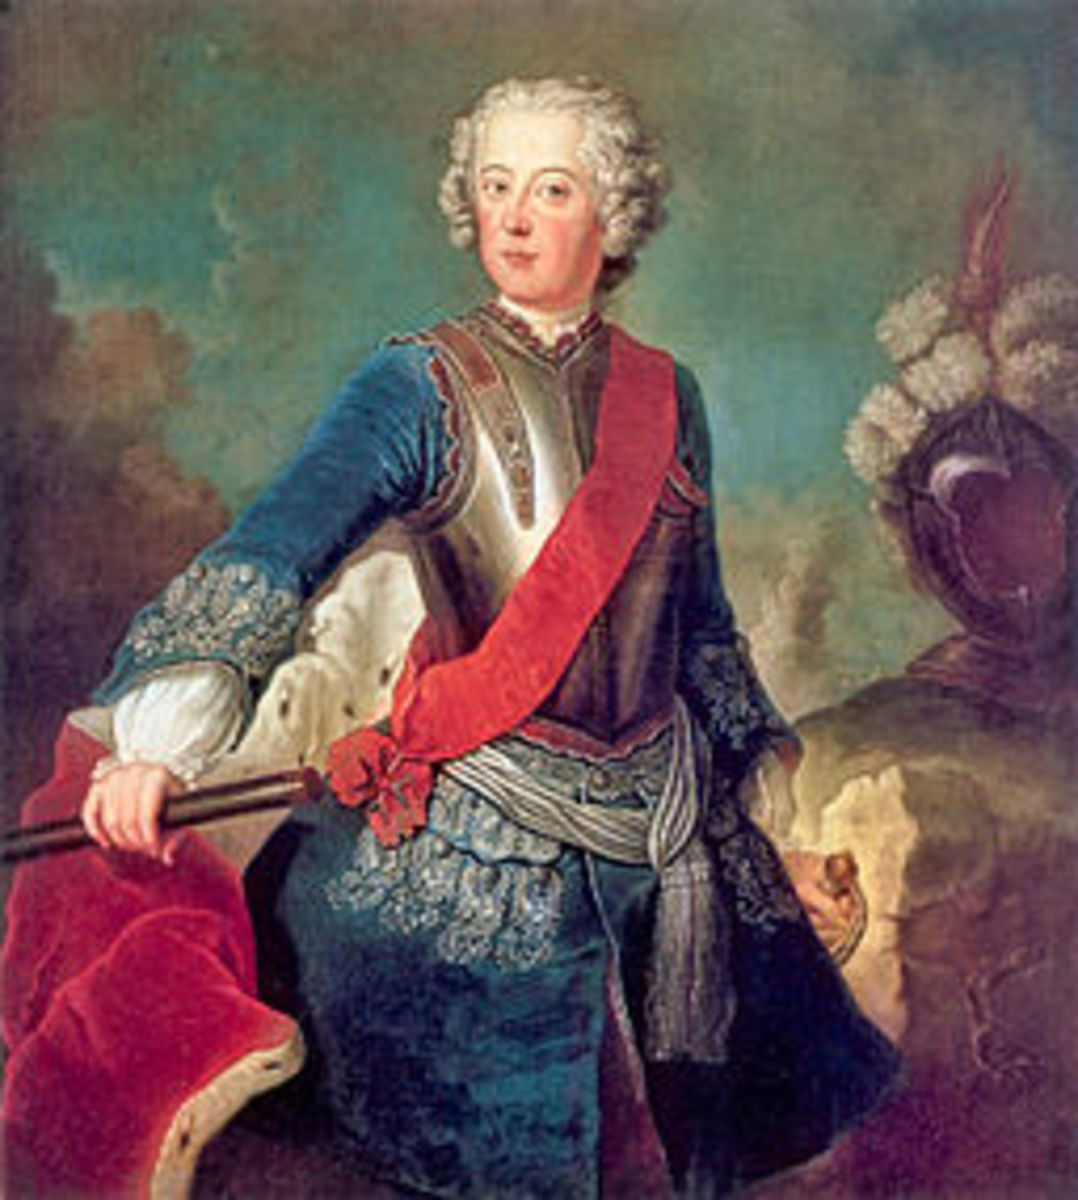 Frederick the Great and Joseph II: Enlightened Despots?